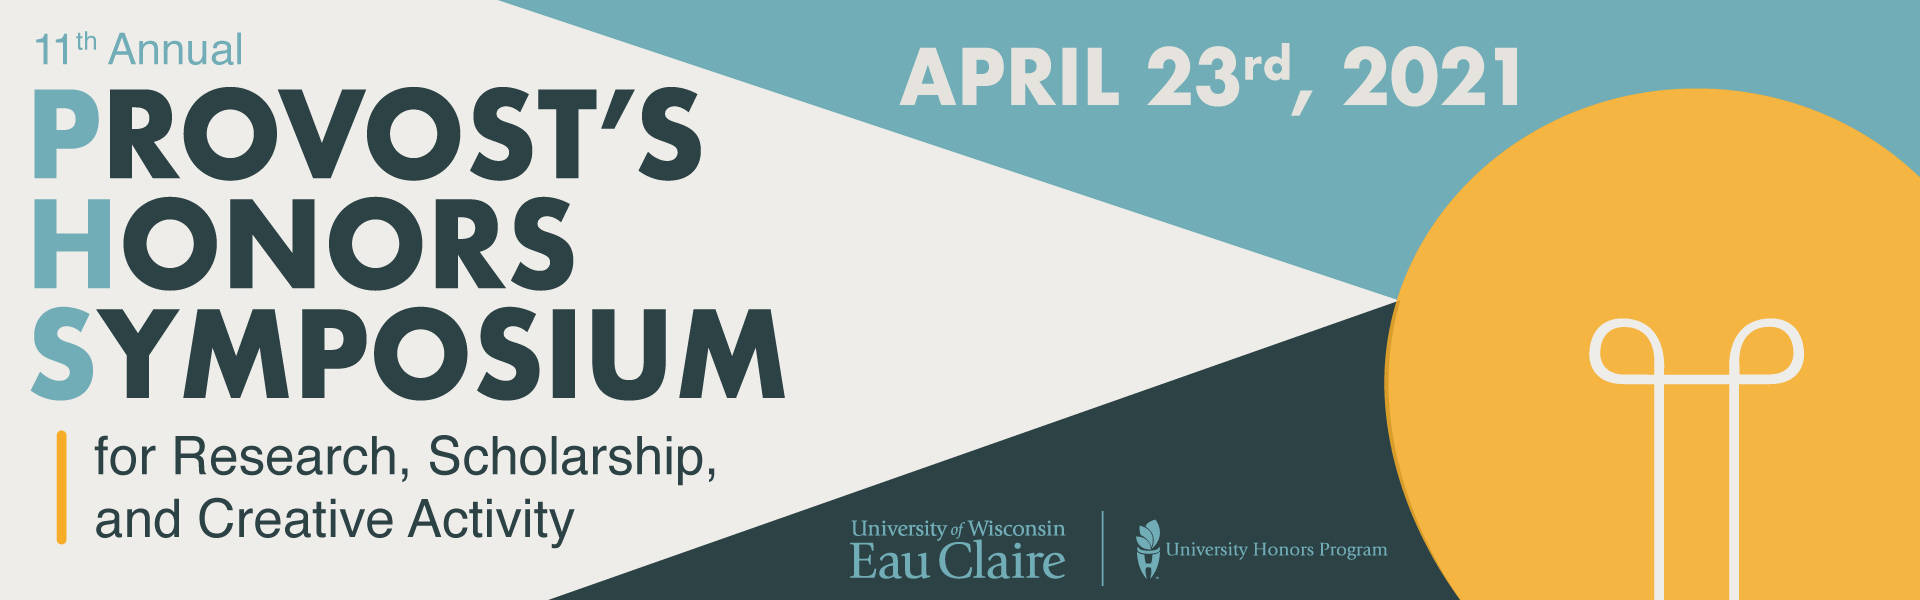 11th Annual Provost's Honors Symposium graphic